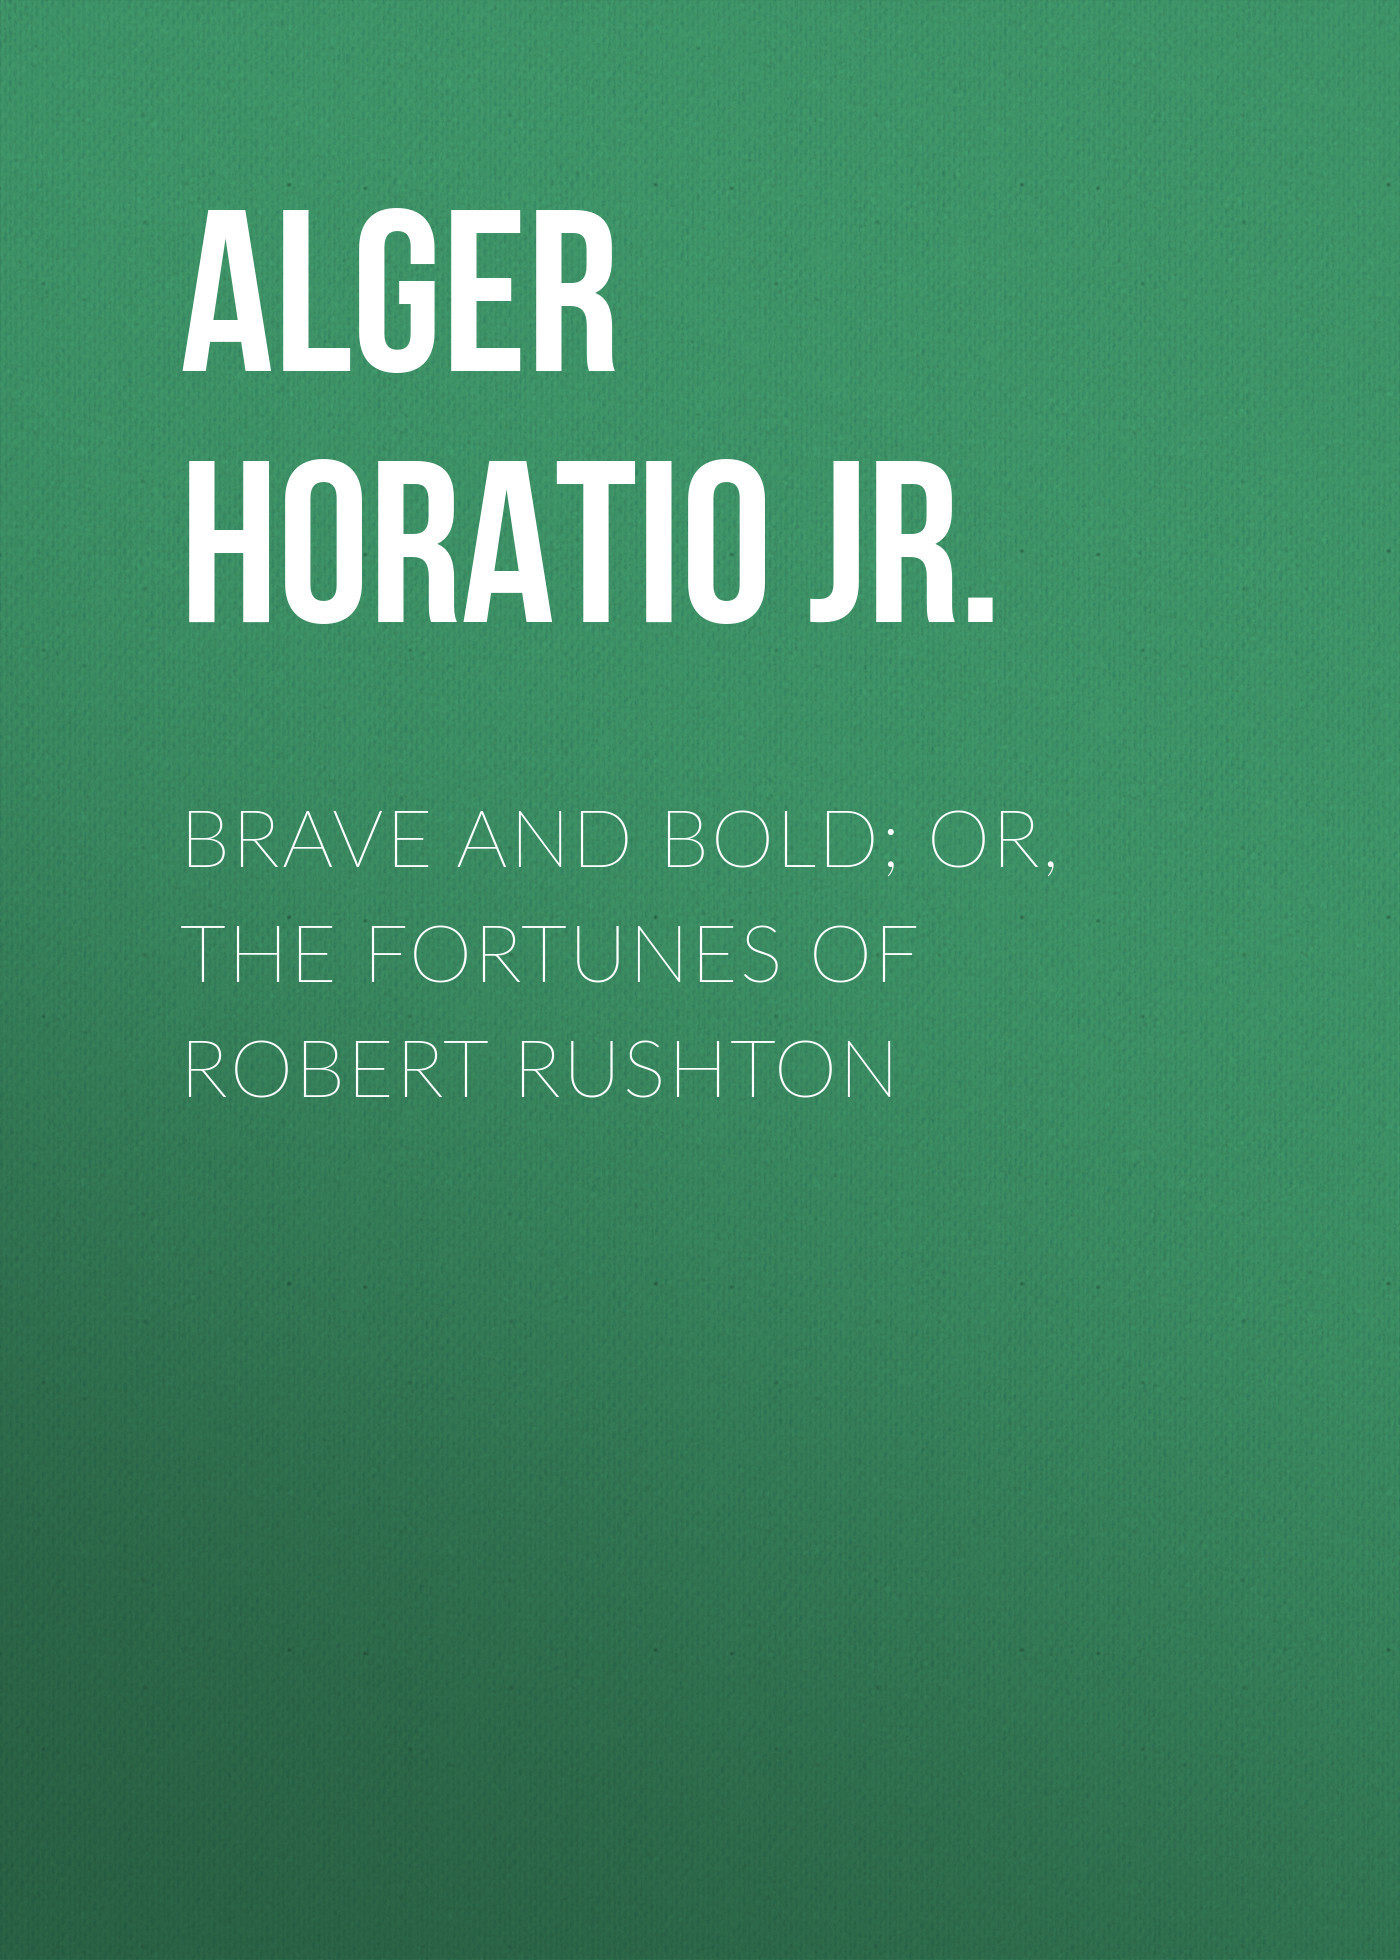 Alger Horatio Jr. Brave and Bold; Or, The Fortunes of Robert Rushton alger horatio jr a debt of honor